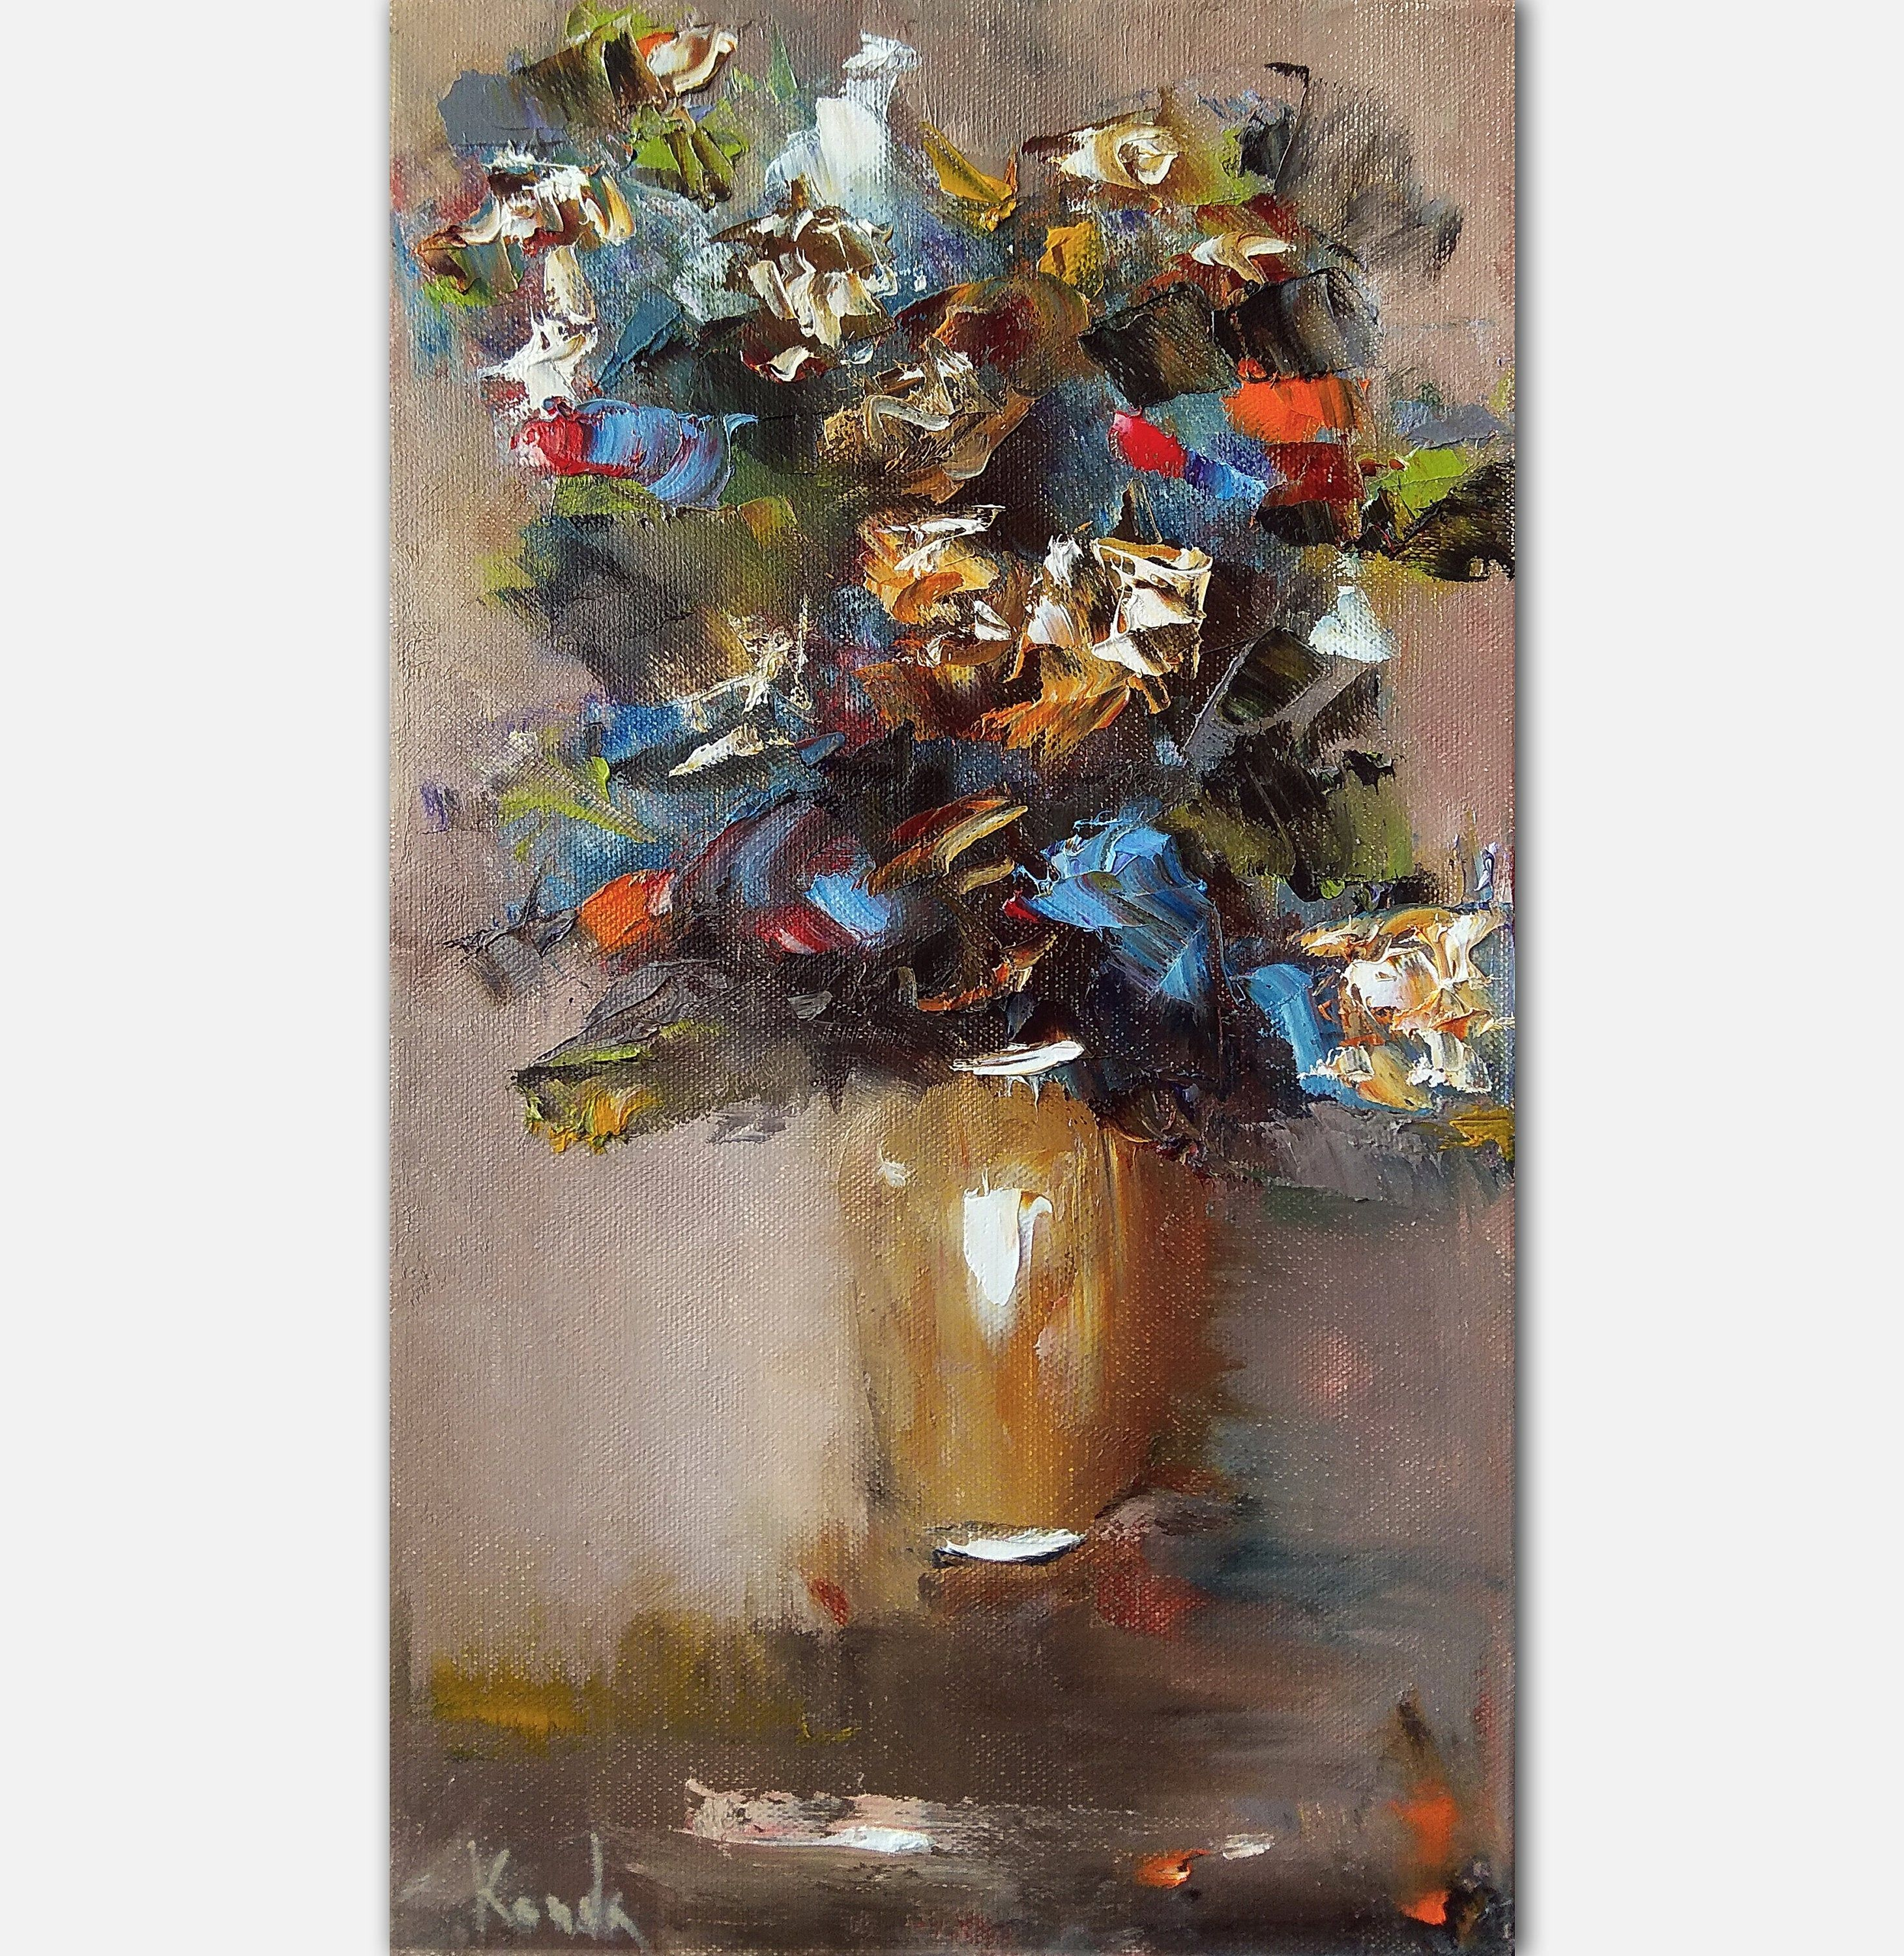 Tall Narrow Flowers Oil Painting On Canvas Wildflowers In Vase Etsy Oil Painting Flowers Abstract Floral Painting